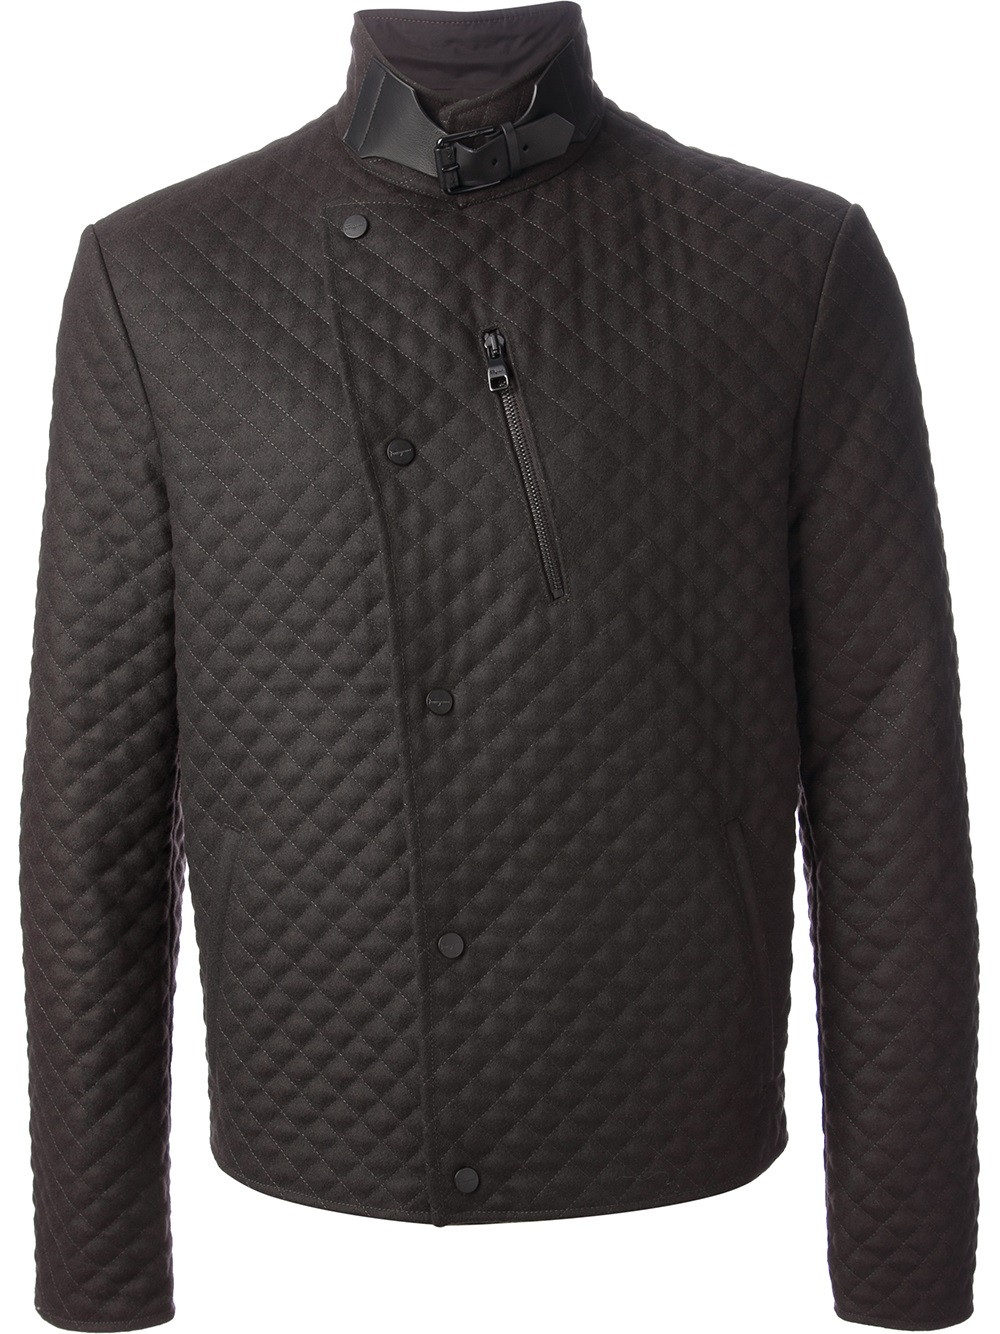 Ferragamo Quilted Jacket In Brown For Men Lyst